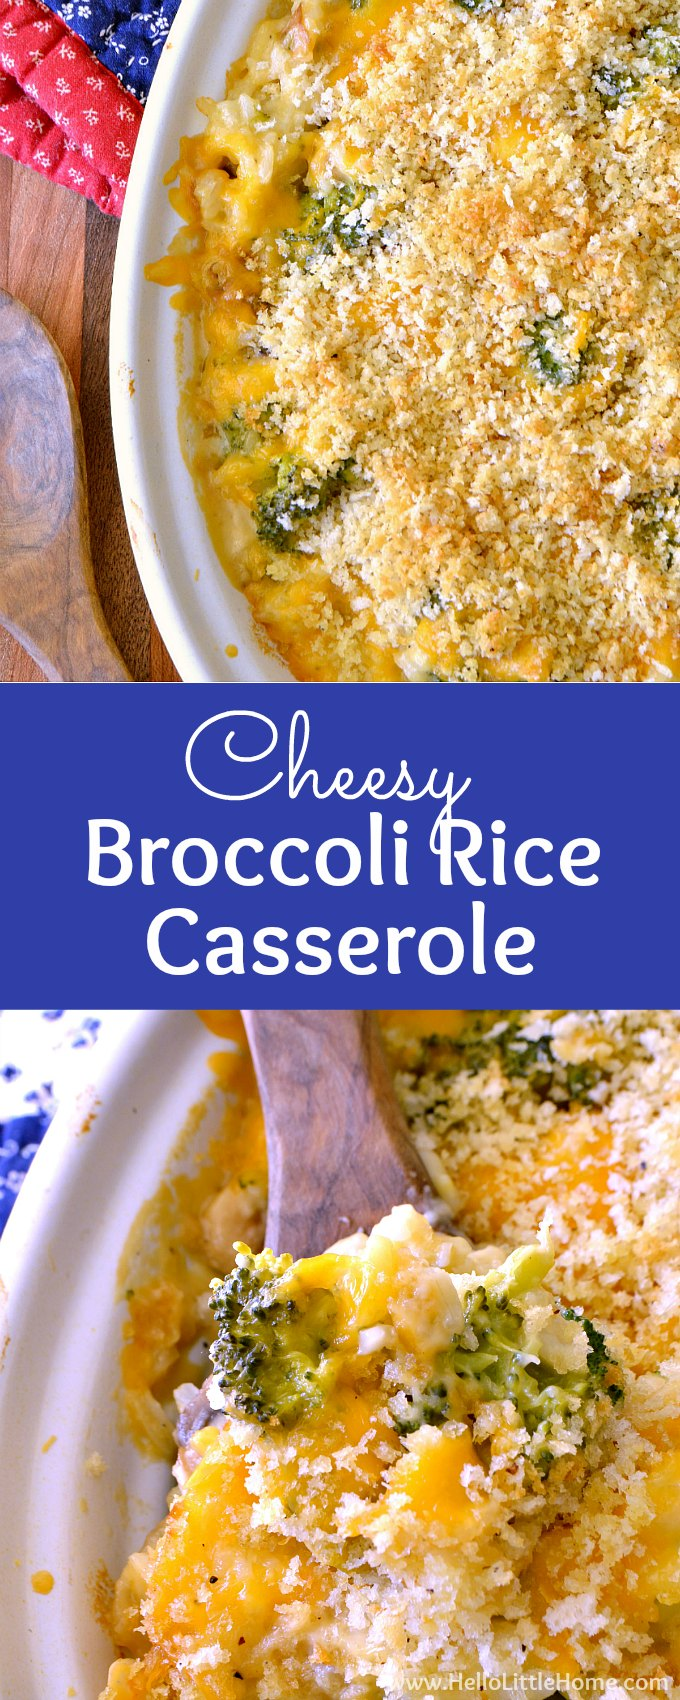 Cheesy Broccoli Rice Casserole from Scratch! This Broccoli, Rice, and Cheese Casserole recipe is perfect for a crowd, uses fresh vegetables, and has no canned soup! This easy, creamy Broccoli Rice Casserole without soup is total comfort food, vegetarian, and ideal for holidays, parties, and families. A homemade baked Broccoli Rice Casserole with fresh veggies, cheddar cheese, and bread crumbs! | Hello Little Home #ComfortFood #broccoliricecasserole #vegetariancasserole #vegetariancomfortfood